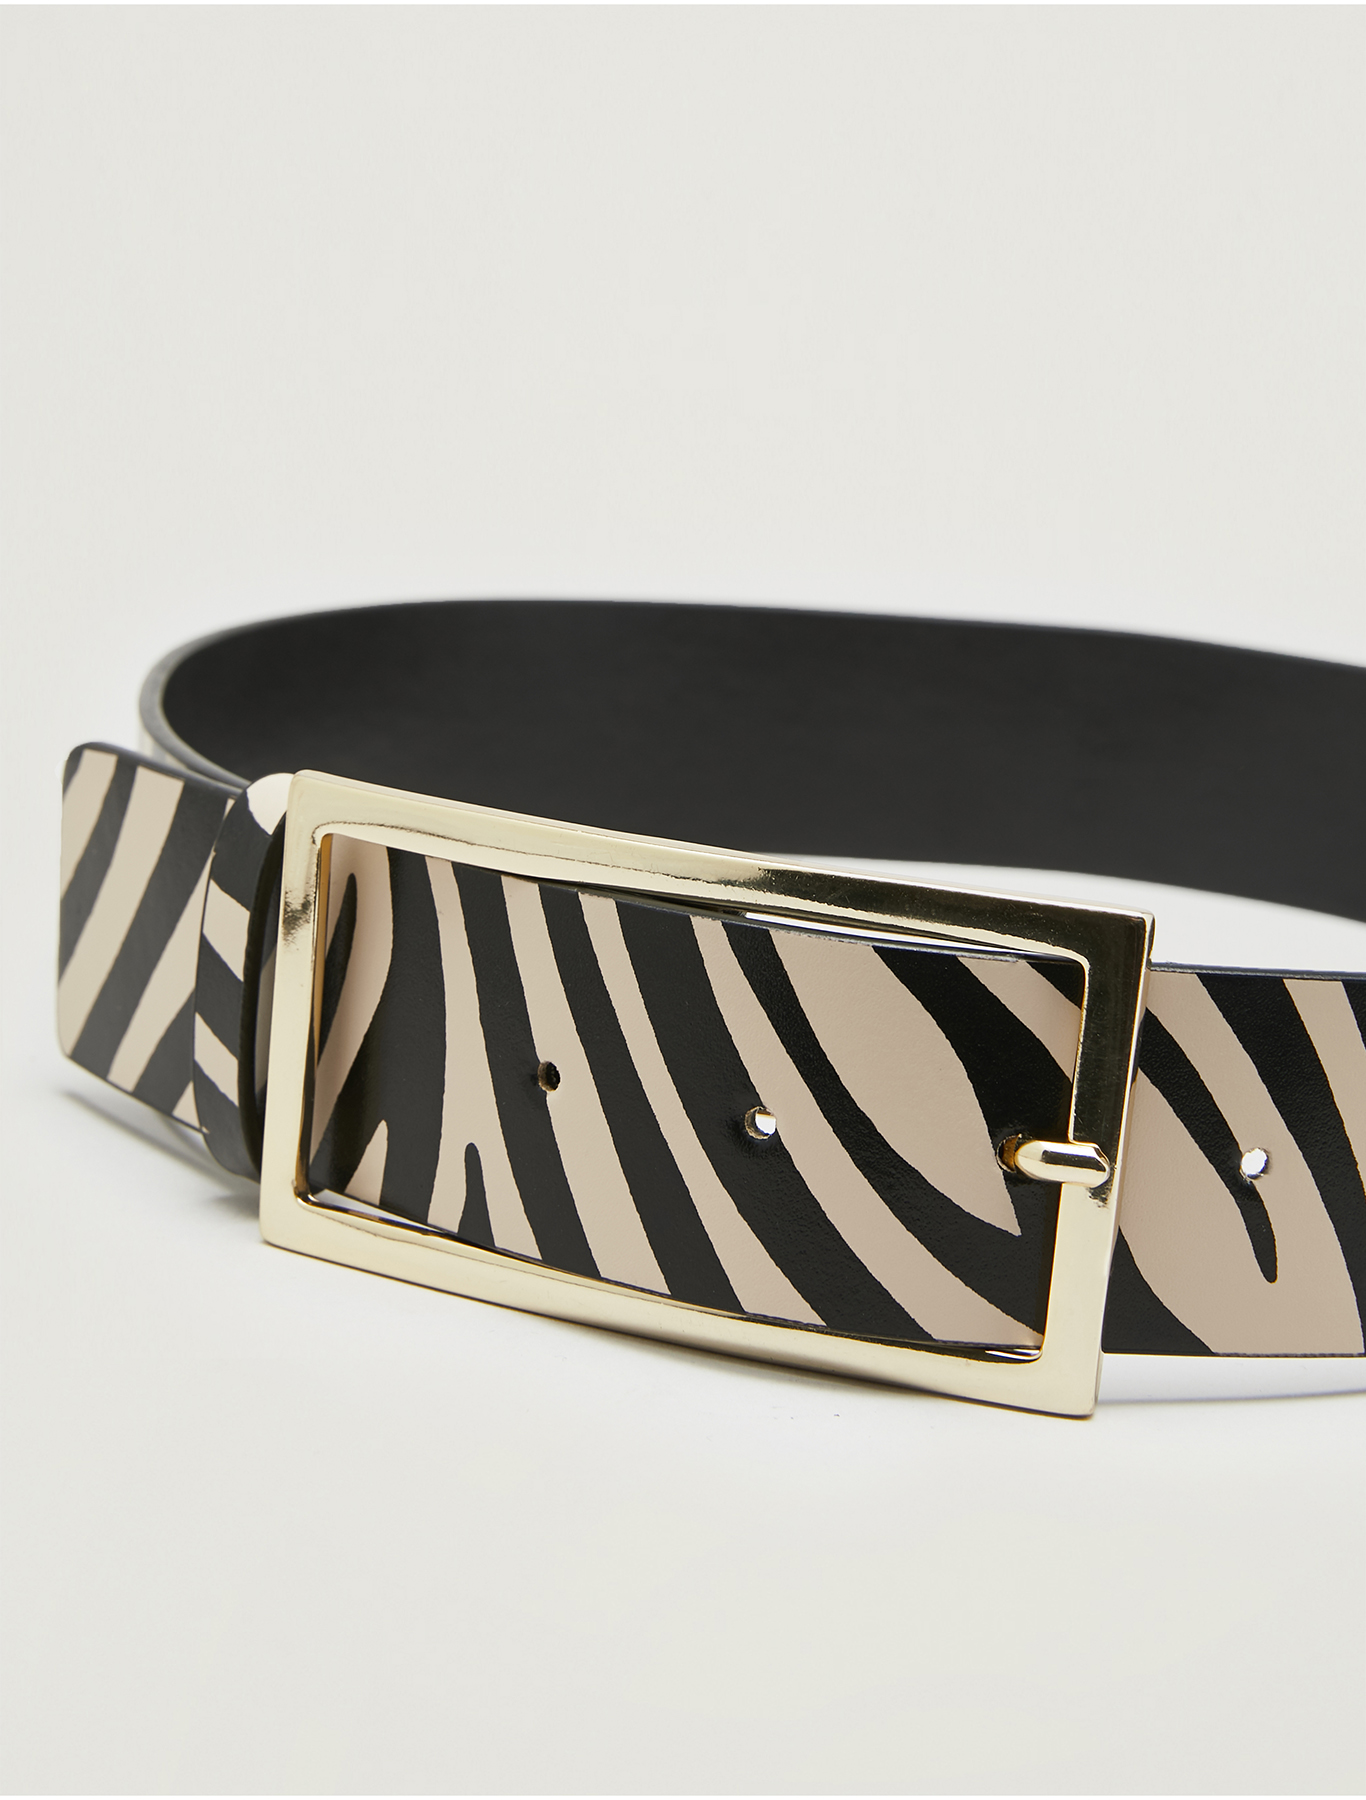 Leather zebra-print belt - black - pennyblack